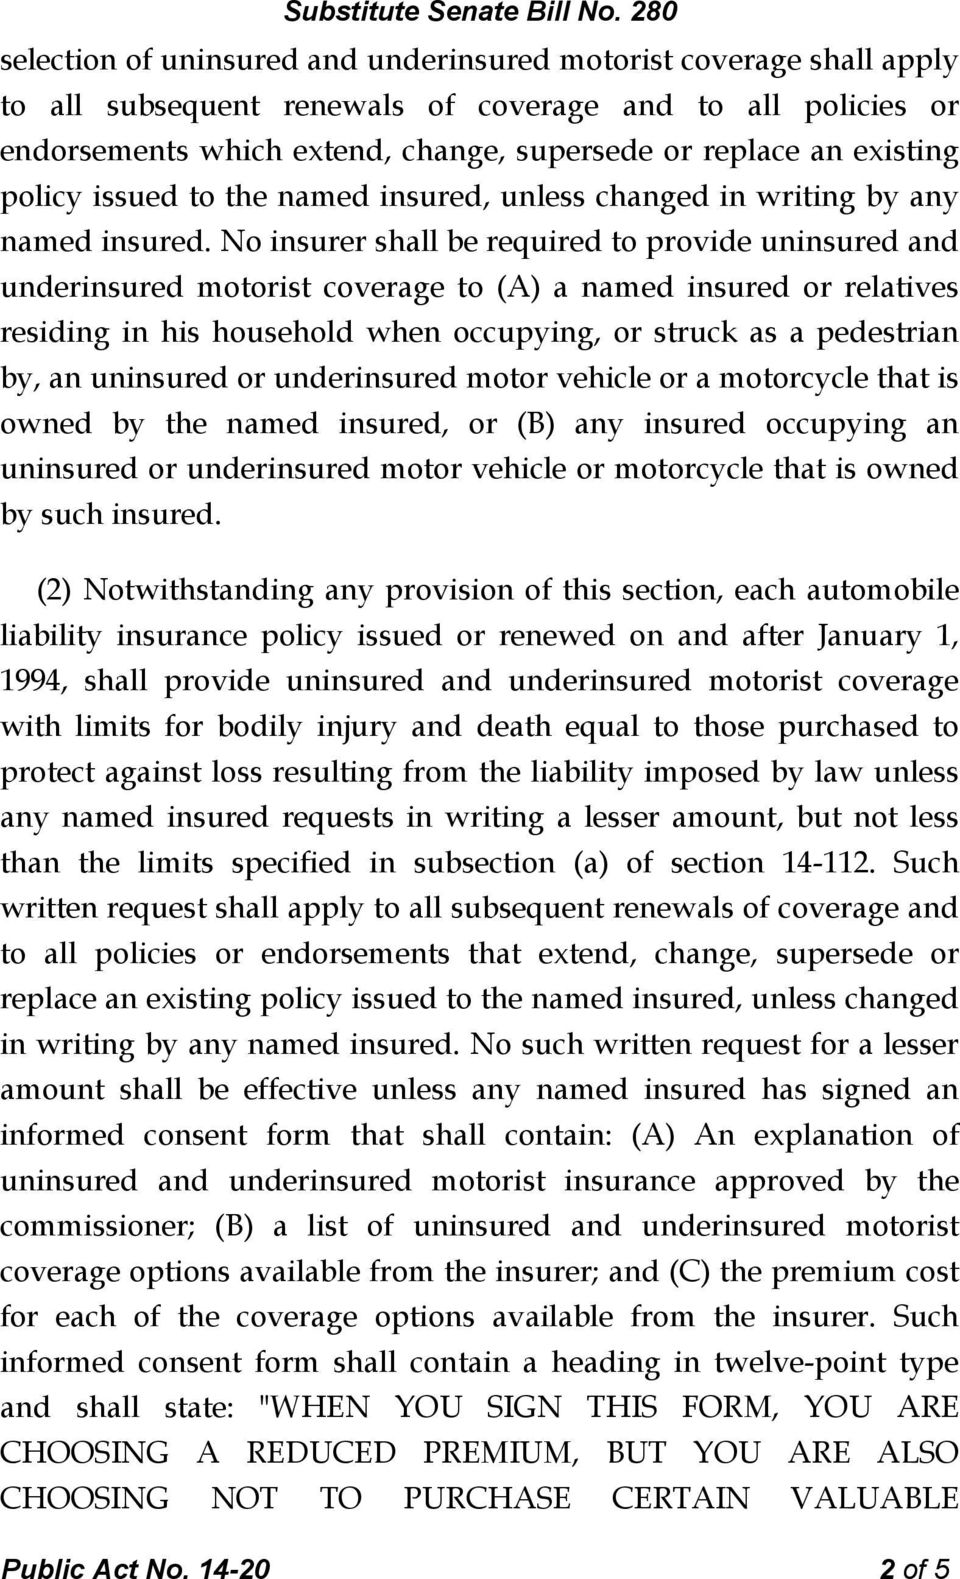 No insurer shall be required to provide uninsured and underinsured motorist coverage to (A) a named insured or relatives residing in his household when occupying, or struck as a pedestrian by, an